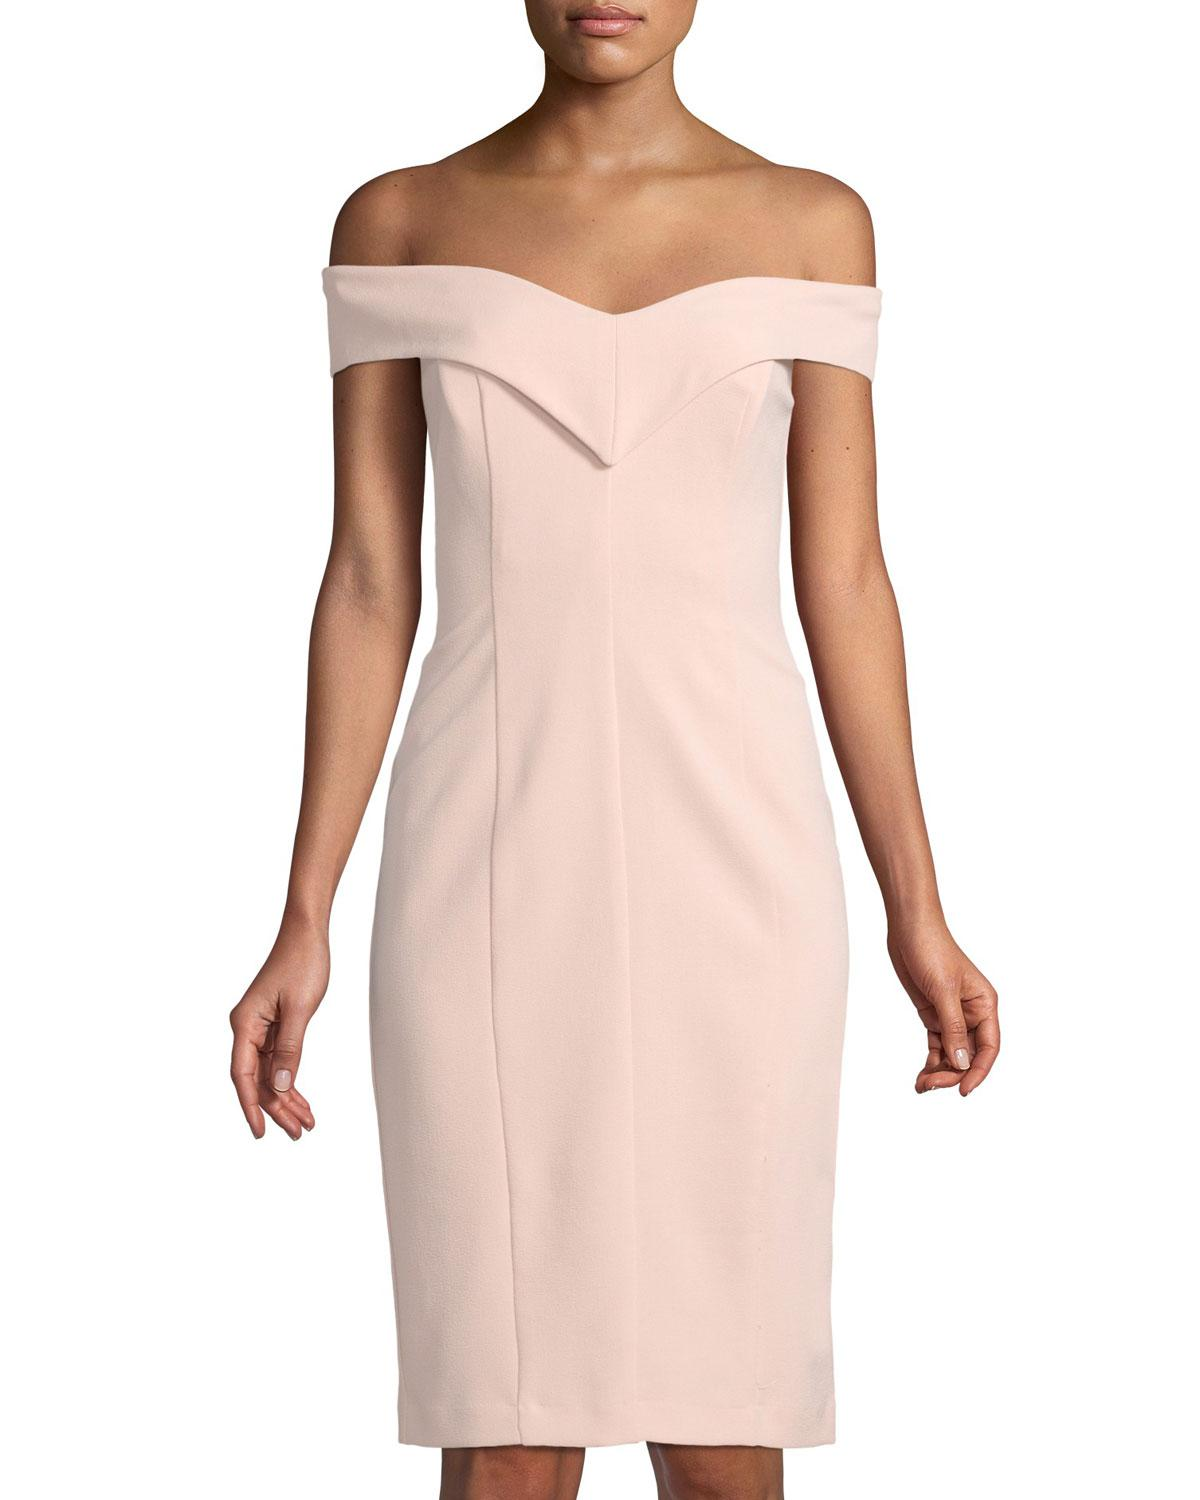 4df344c1 Gallery. Previously sold at: Last Call · Women's Off The Shoulder Dresses  Women's Sheath Dresses Women's Wedding Guest Dresses